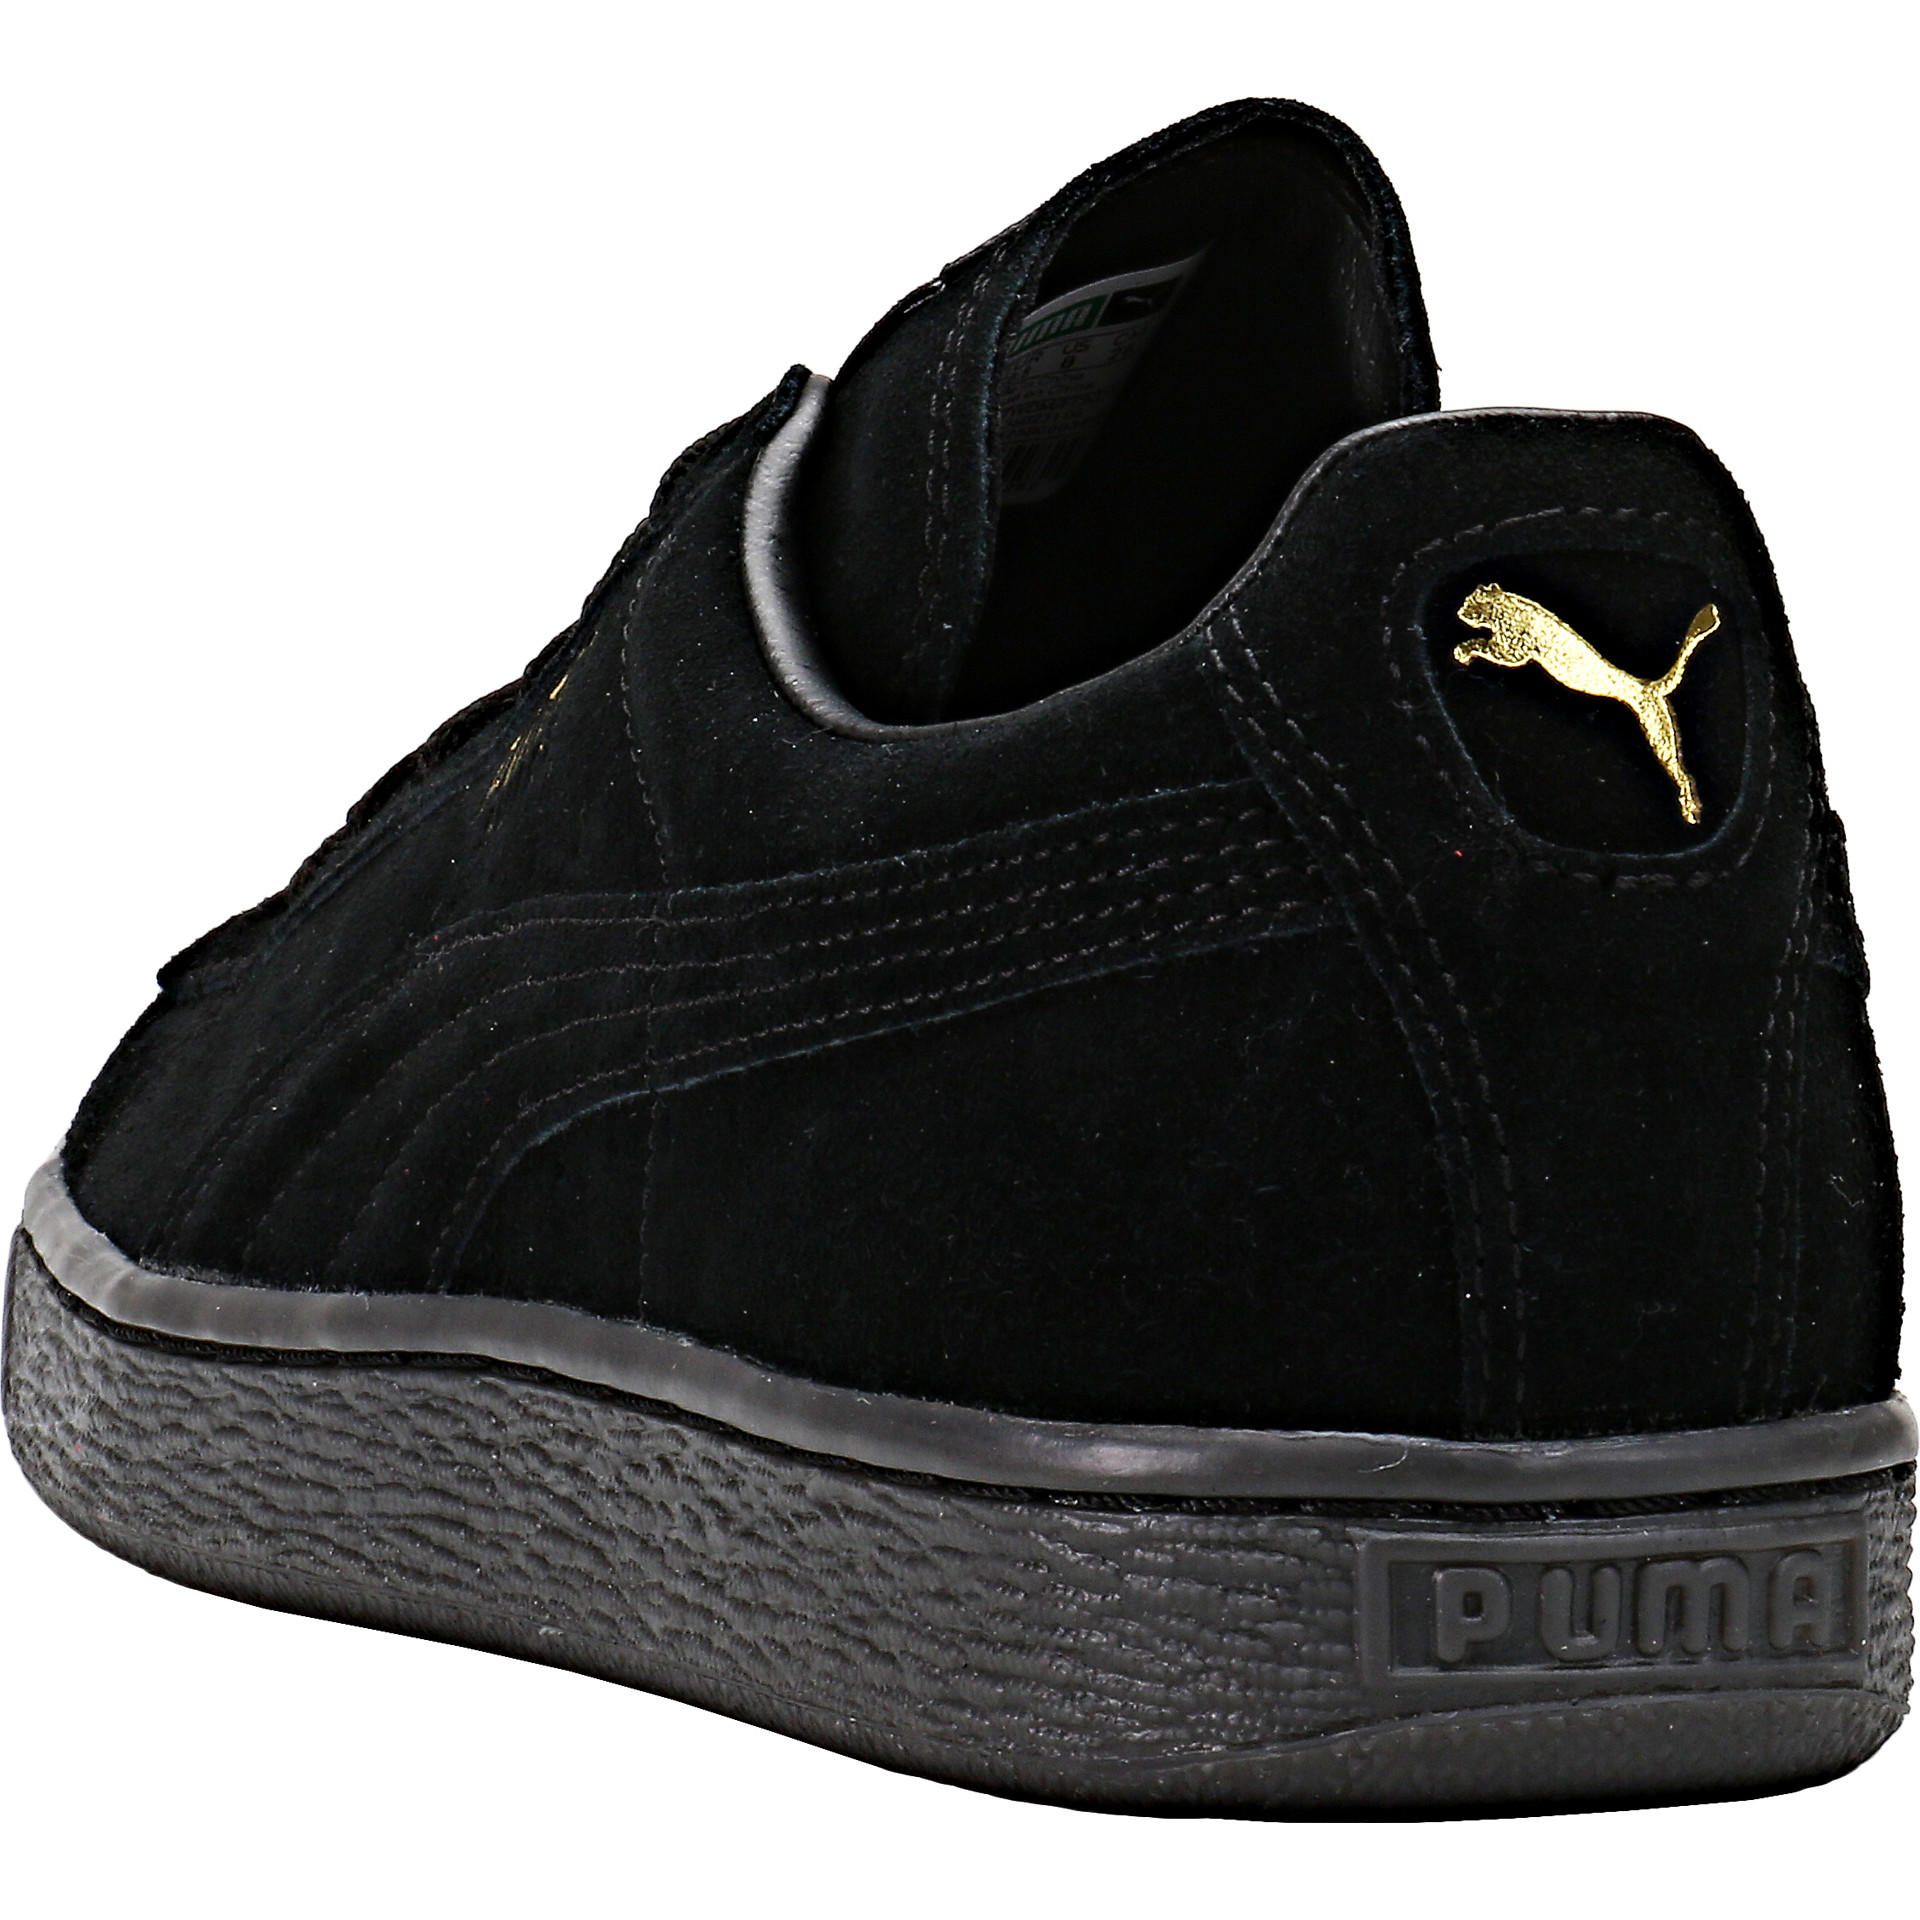 Puma Suede Mono Ice - Black Team Gold from NICE KICKS  2e0c263cbd